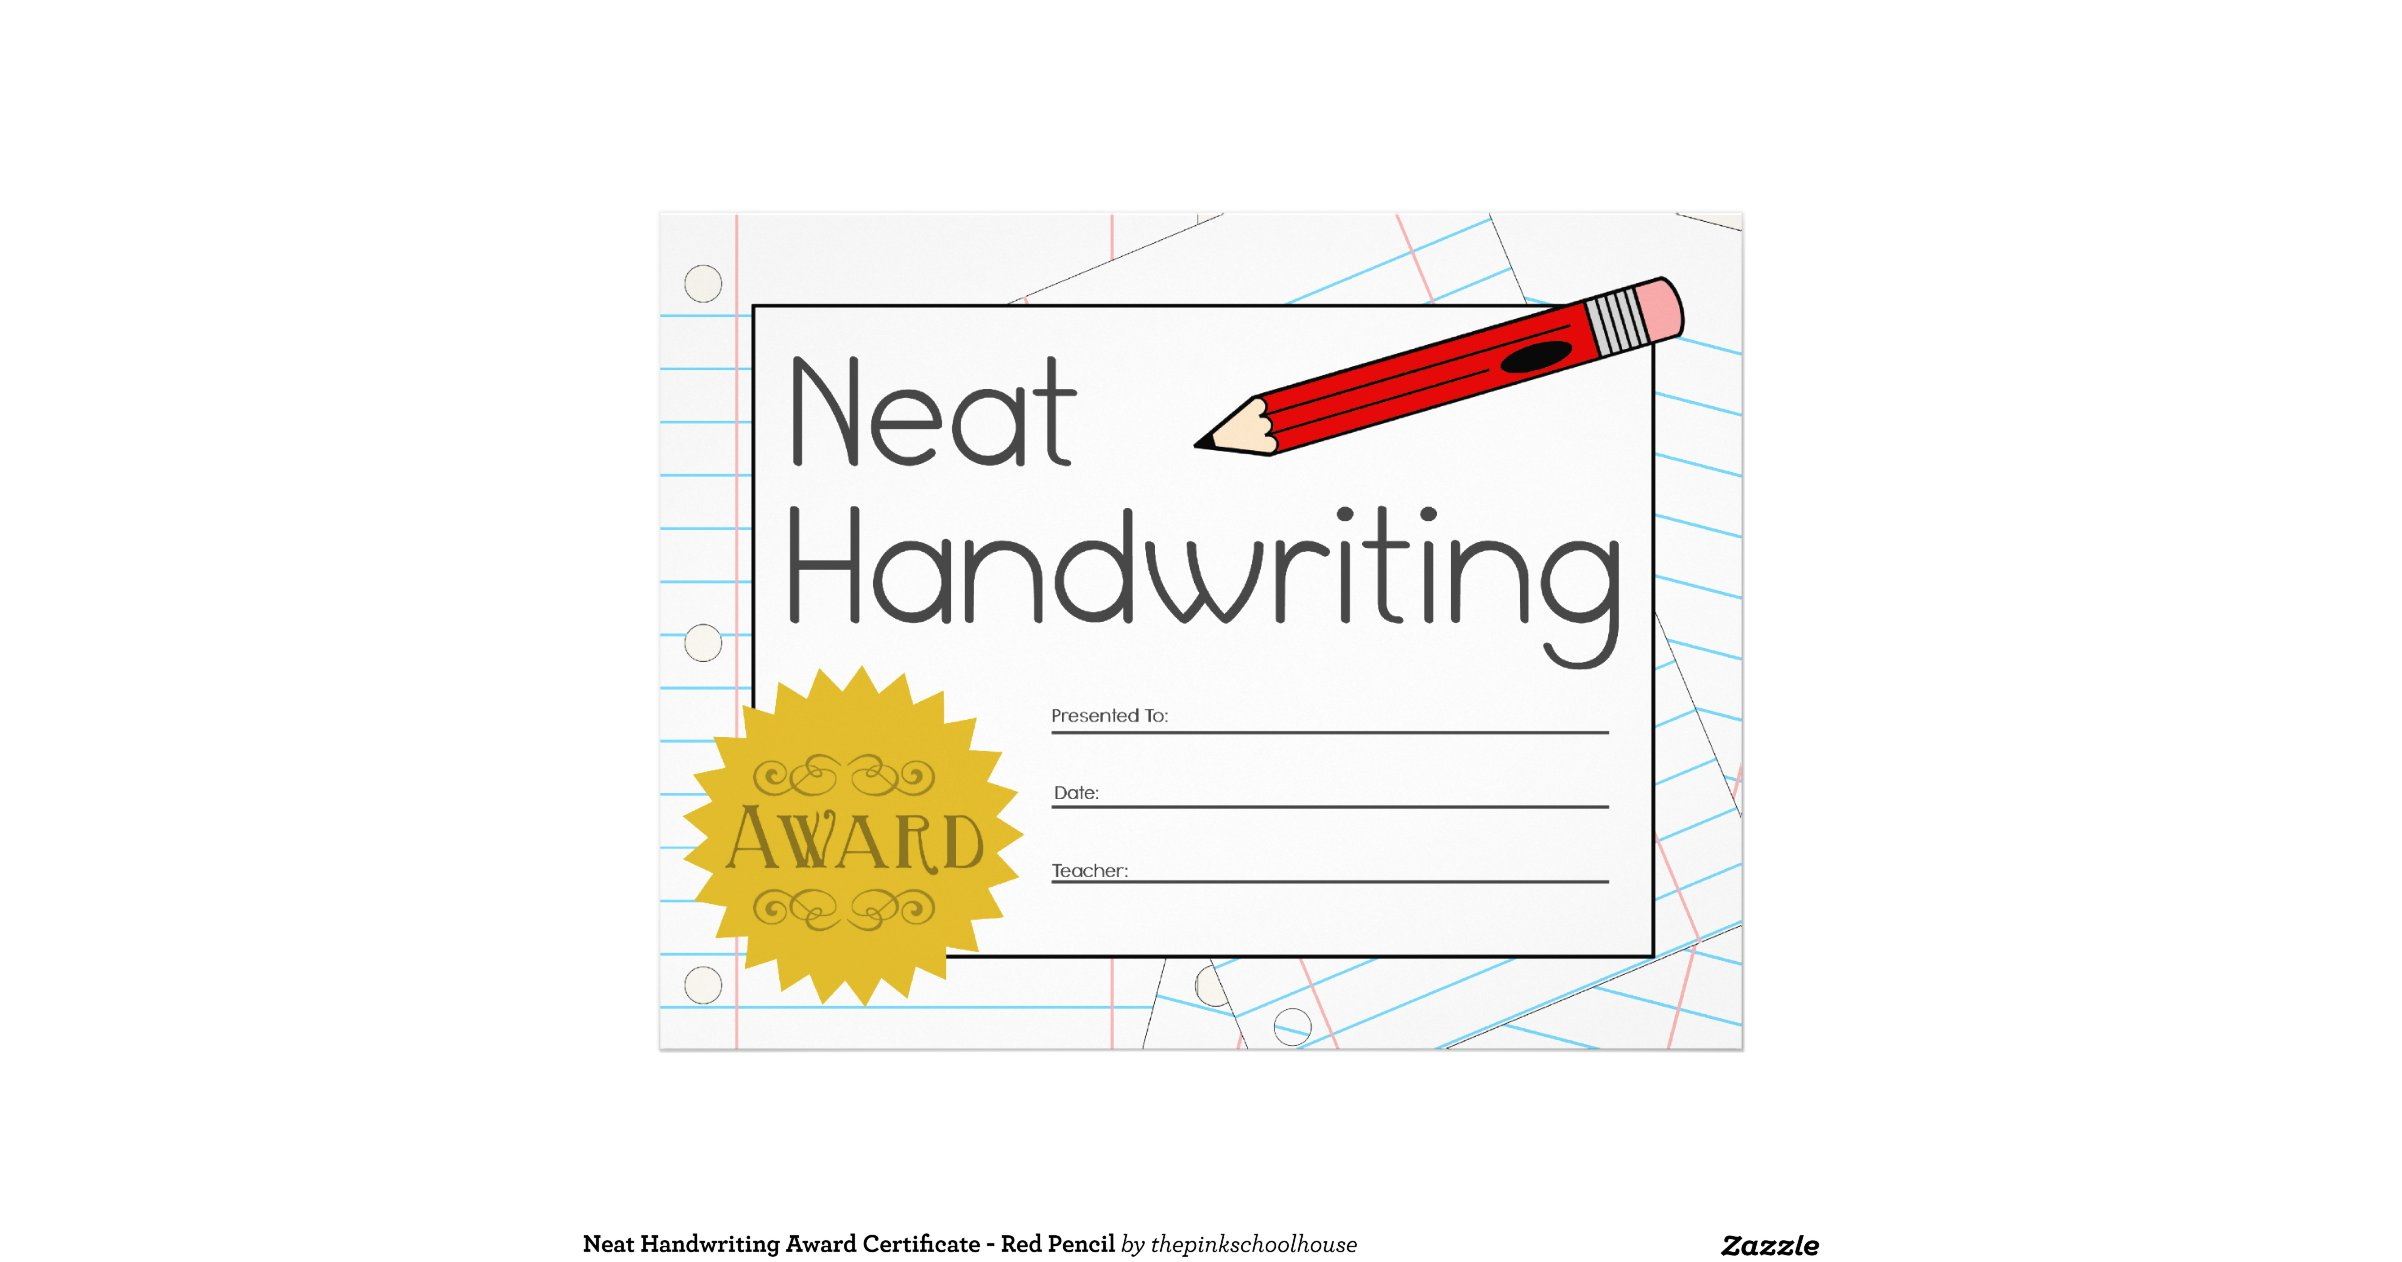 pictures of neat handwriting award